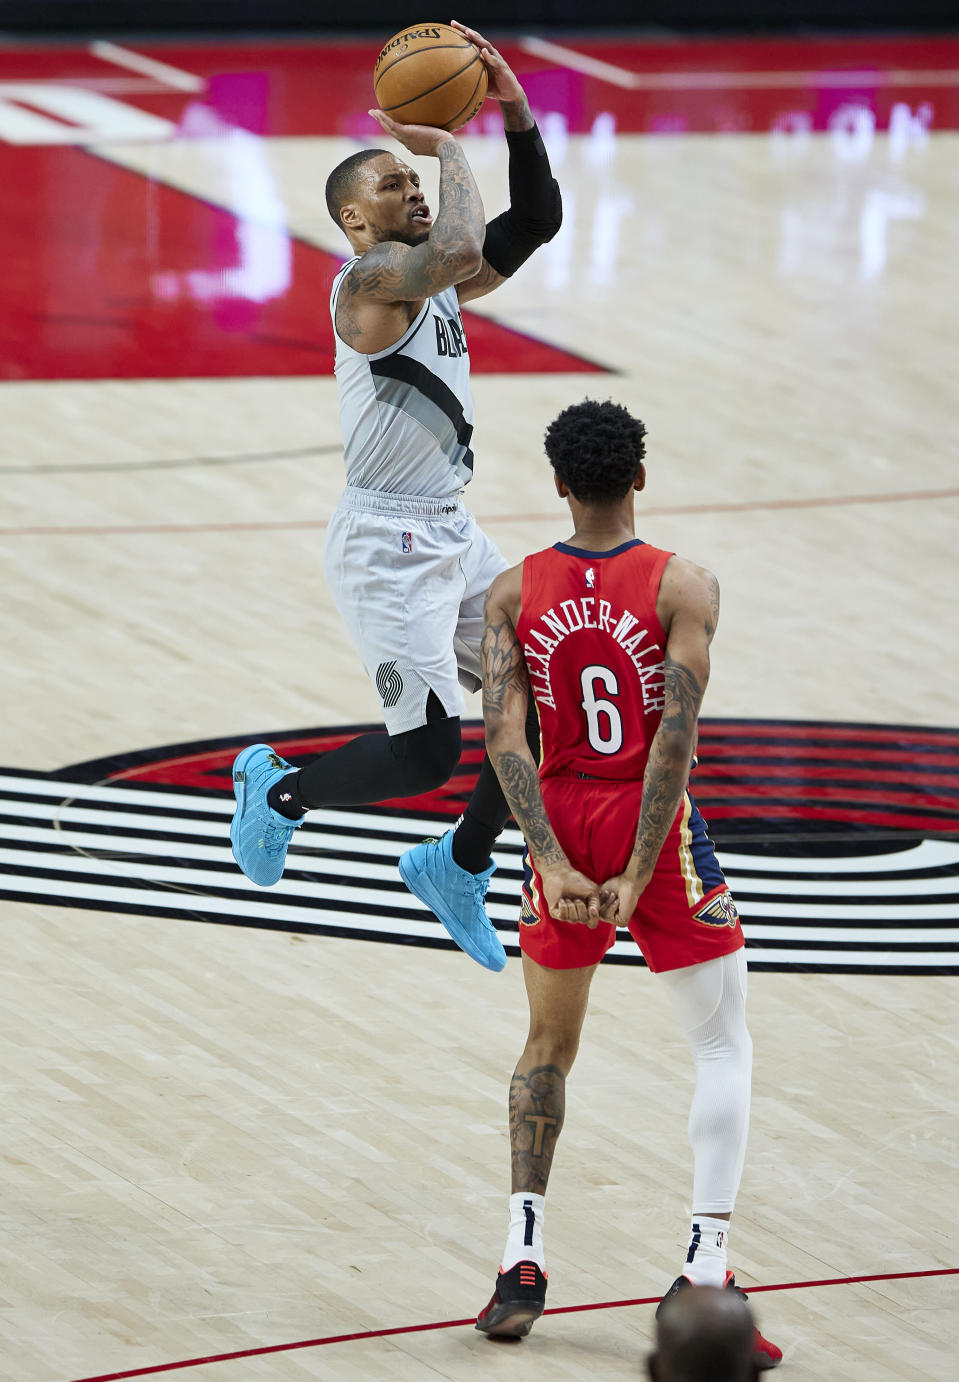 Portland Trail Blazers guard Damian Lillard shoots a 3-point basket over New Orleans Pelicans guard Nickeil Alexander-Walker during the second half of an NBA basketball game in Portland, Ore., Tuesday, March 16, 2021. (AP Photo/Craig Mitchelldyer)